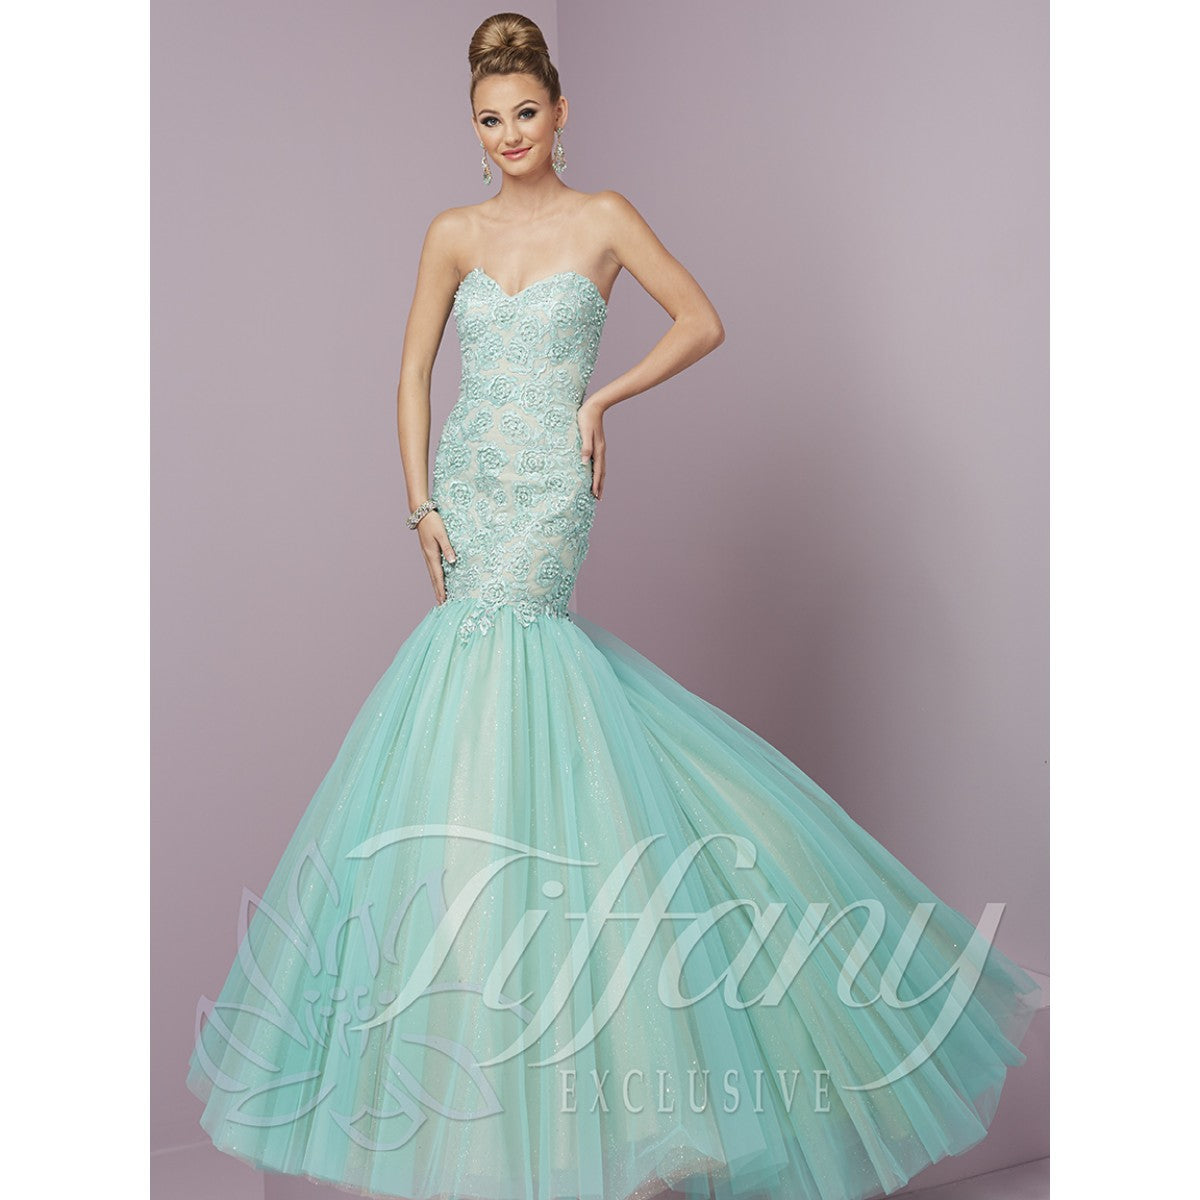 Tiffany Designs Tulle Mermaid Gown 46088 Aqua/Nude